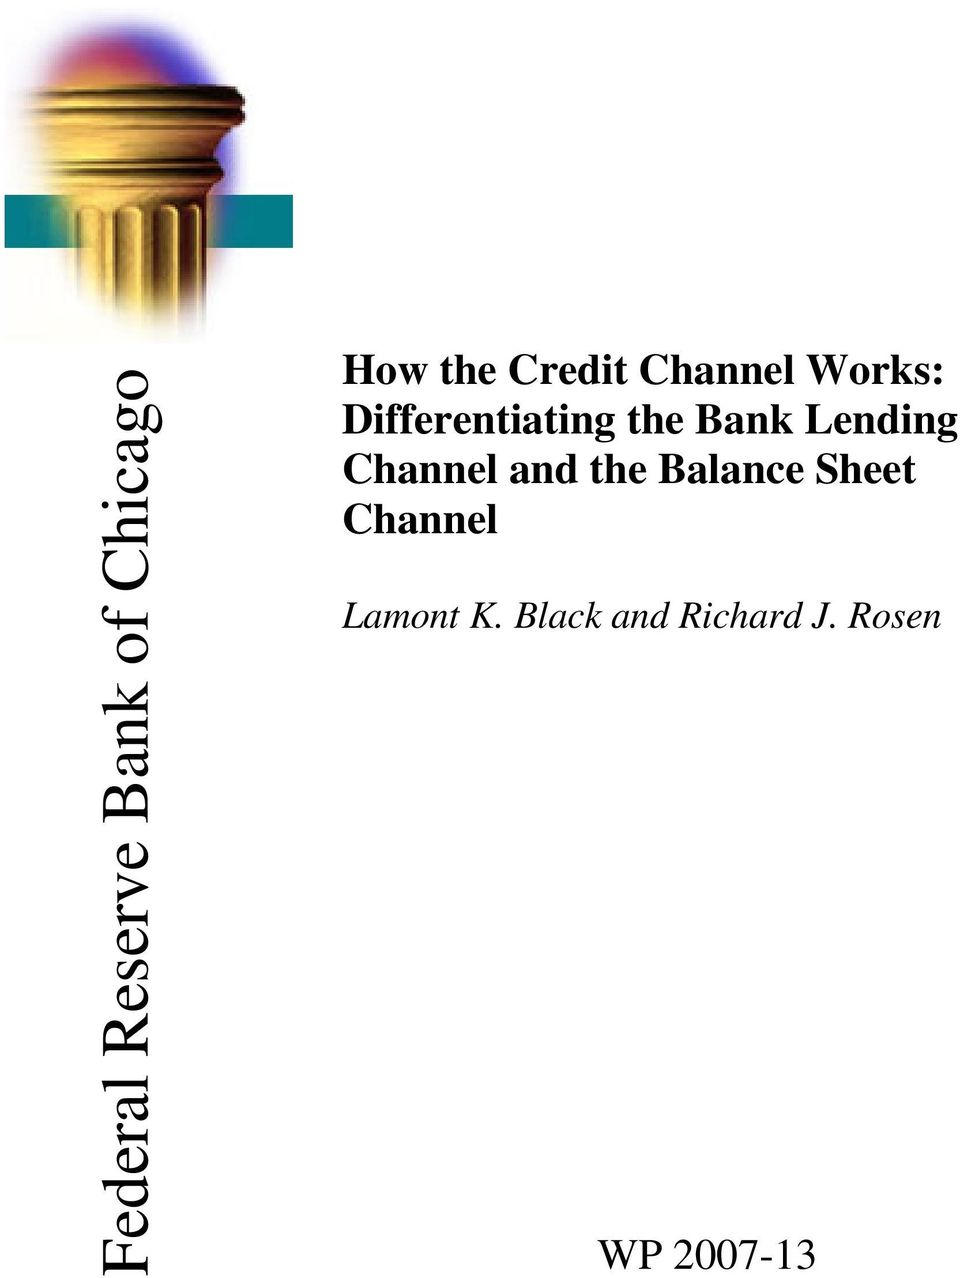 Bank Lending Channel and the Balance Sheet